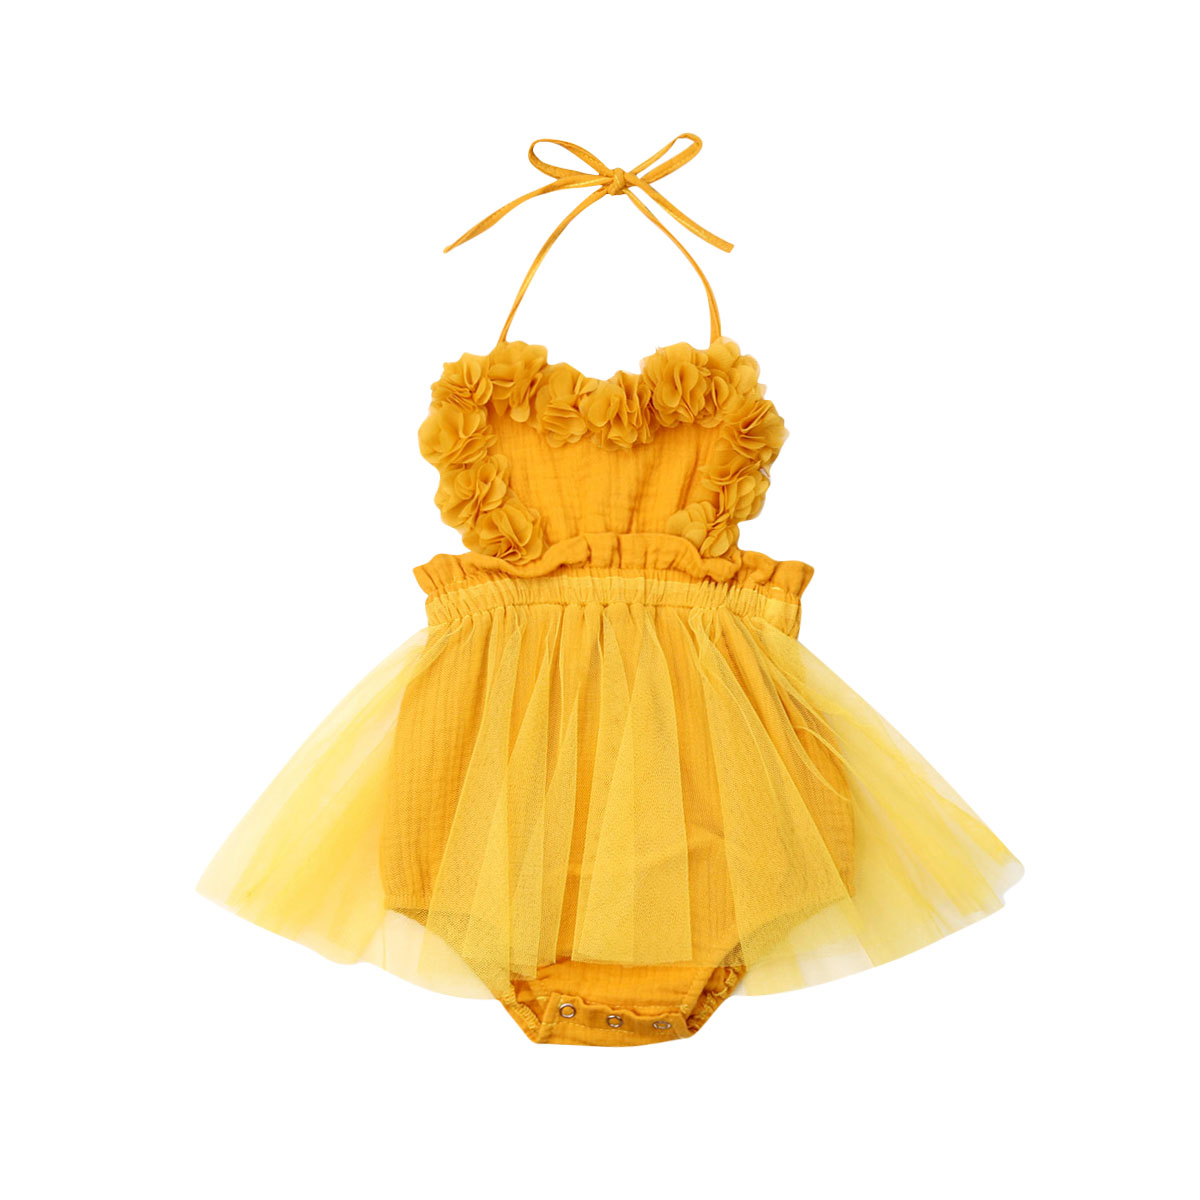 af5eb412d Newborn Baby Girl Tulle Romper Dress Yellow Solid Lace Sleeveless Belt  Jumpsuit Outfits Summer Clothes